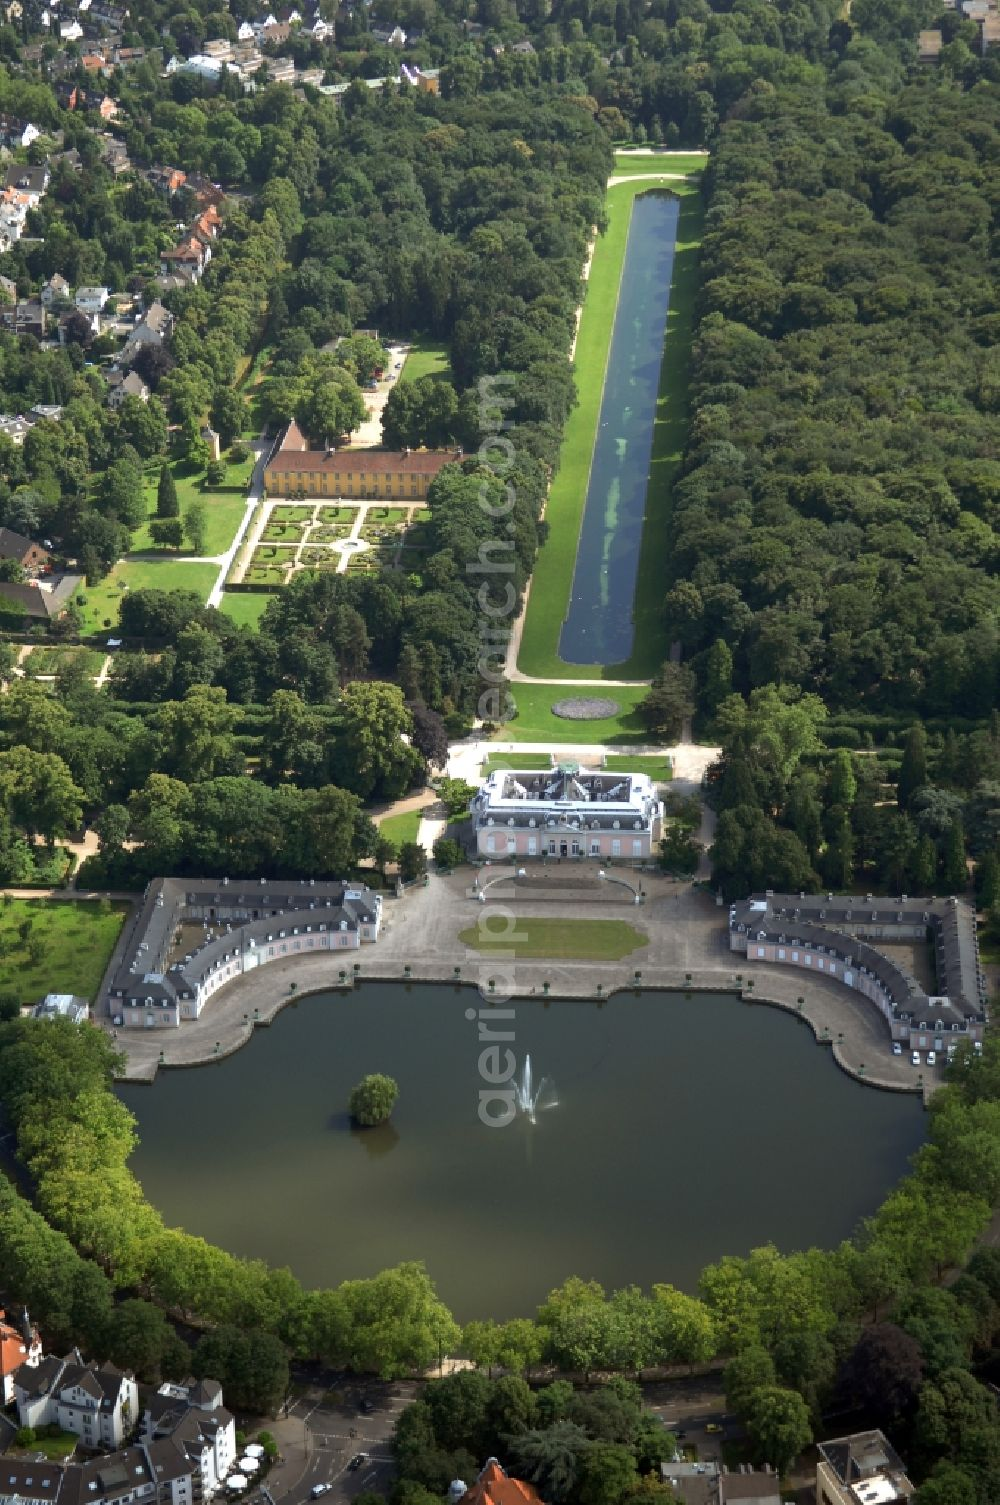 Düsseldorf from the bird's eye view: Building and castle park systems of water castle in the district Benrath in Duesseldorf in the state North Rhine-Westphalia, Germany.